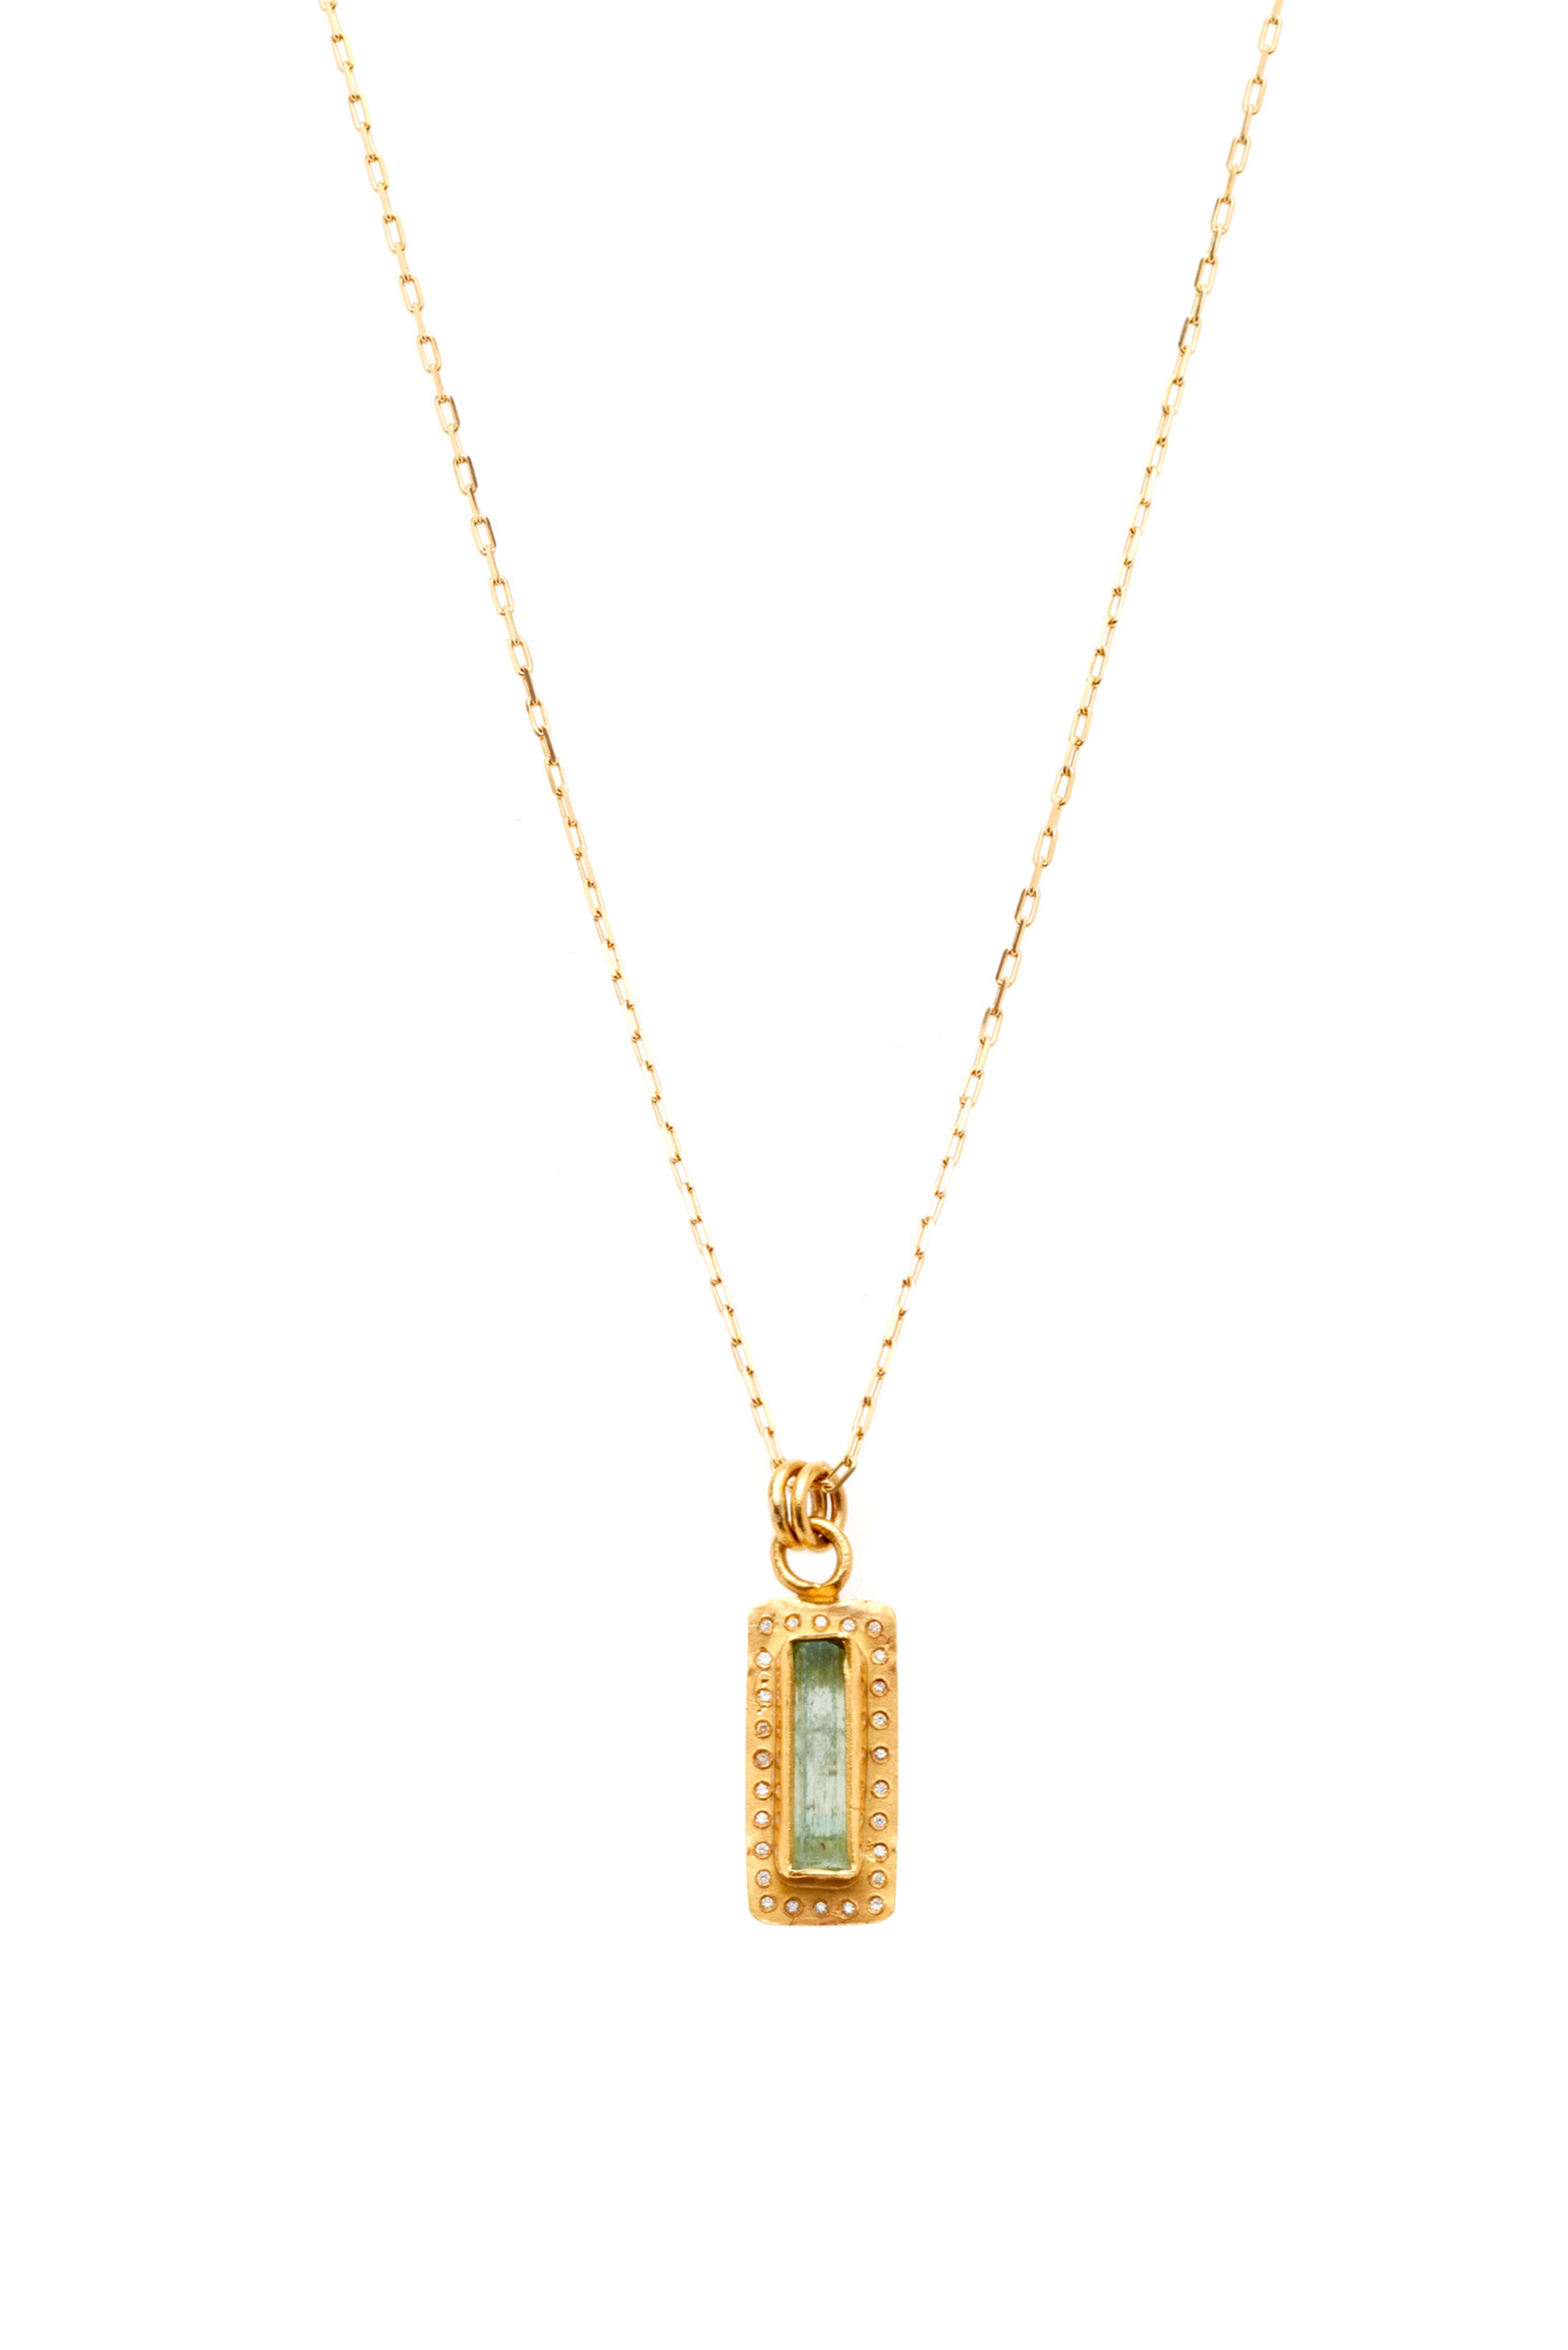 22K gold with a Colombian crystal and diamonds  -